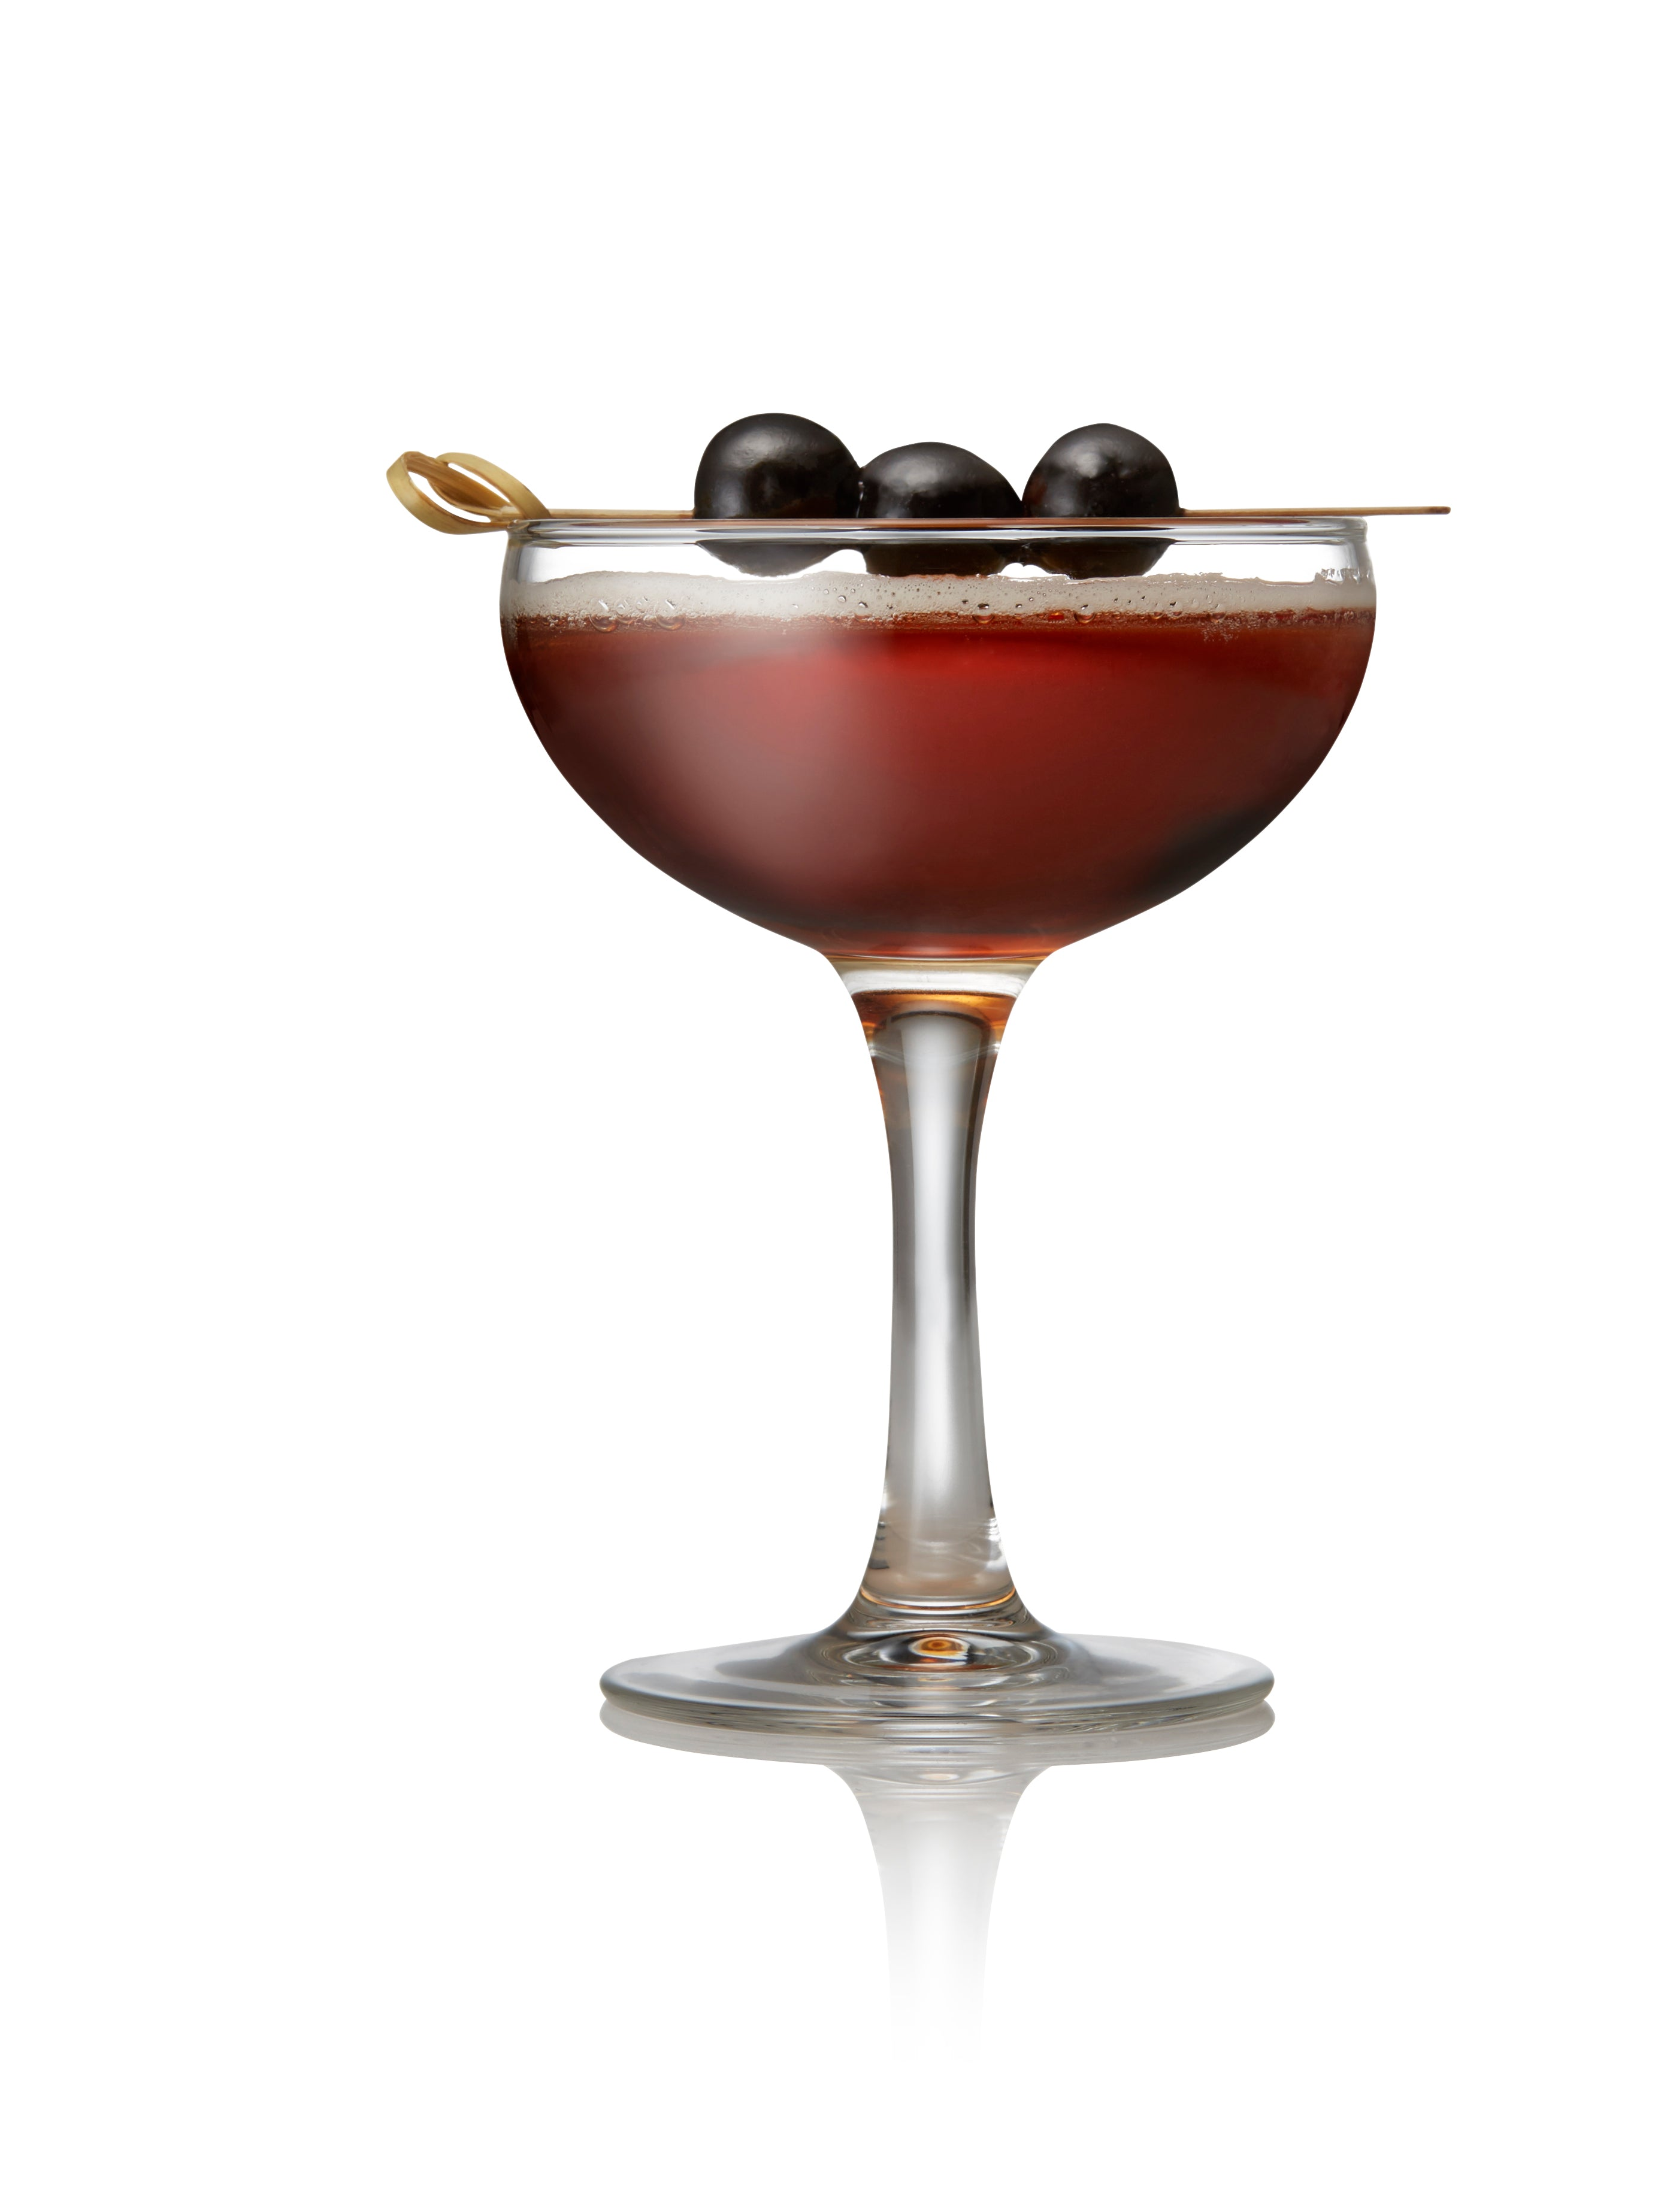 Rob Roy cocktails